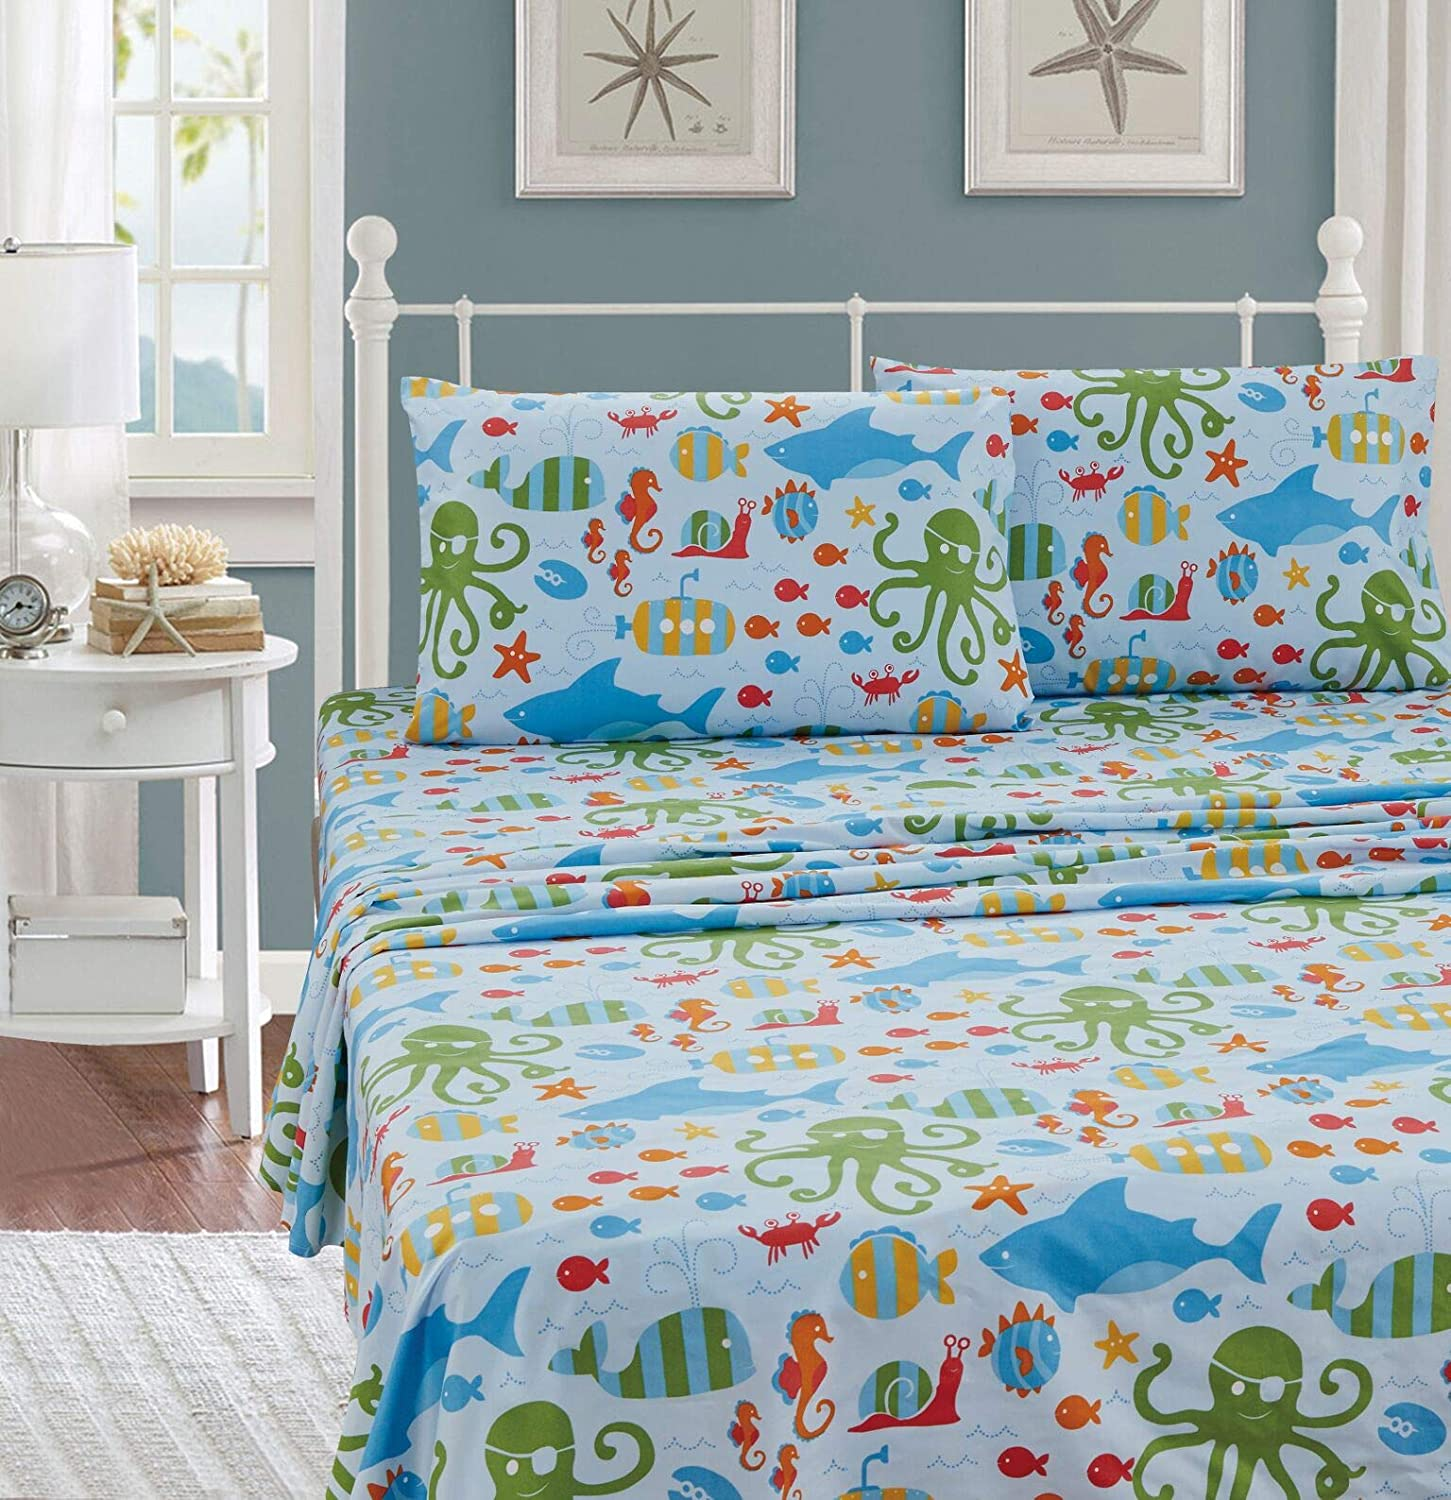 Better Home Style Blue Green Octopus Pirates Sailor Under The Sea Marine Life with Whales Kids//Boys//Toddler 2 Piece Coverlet Bedspread Quilt Set with Pillowcase # Octopus Green Twin